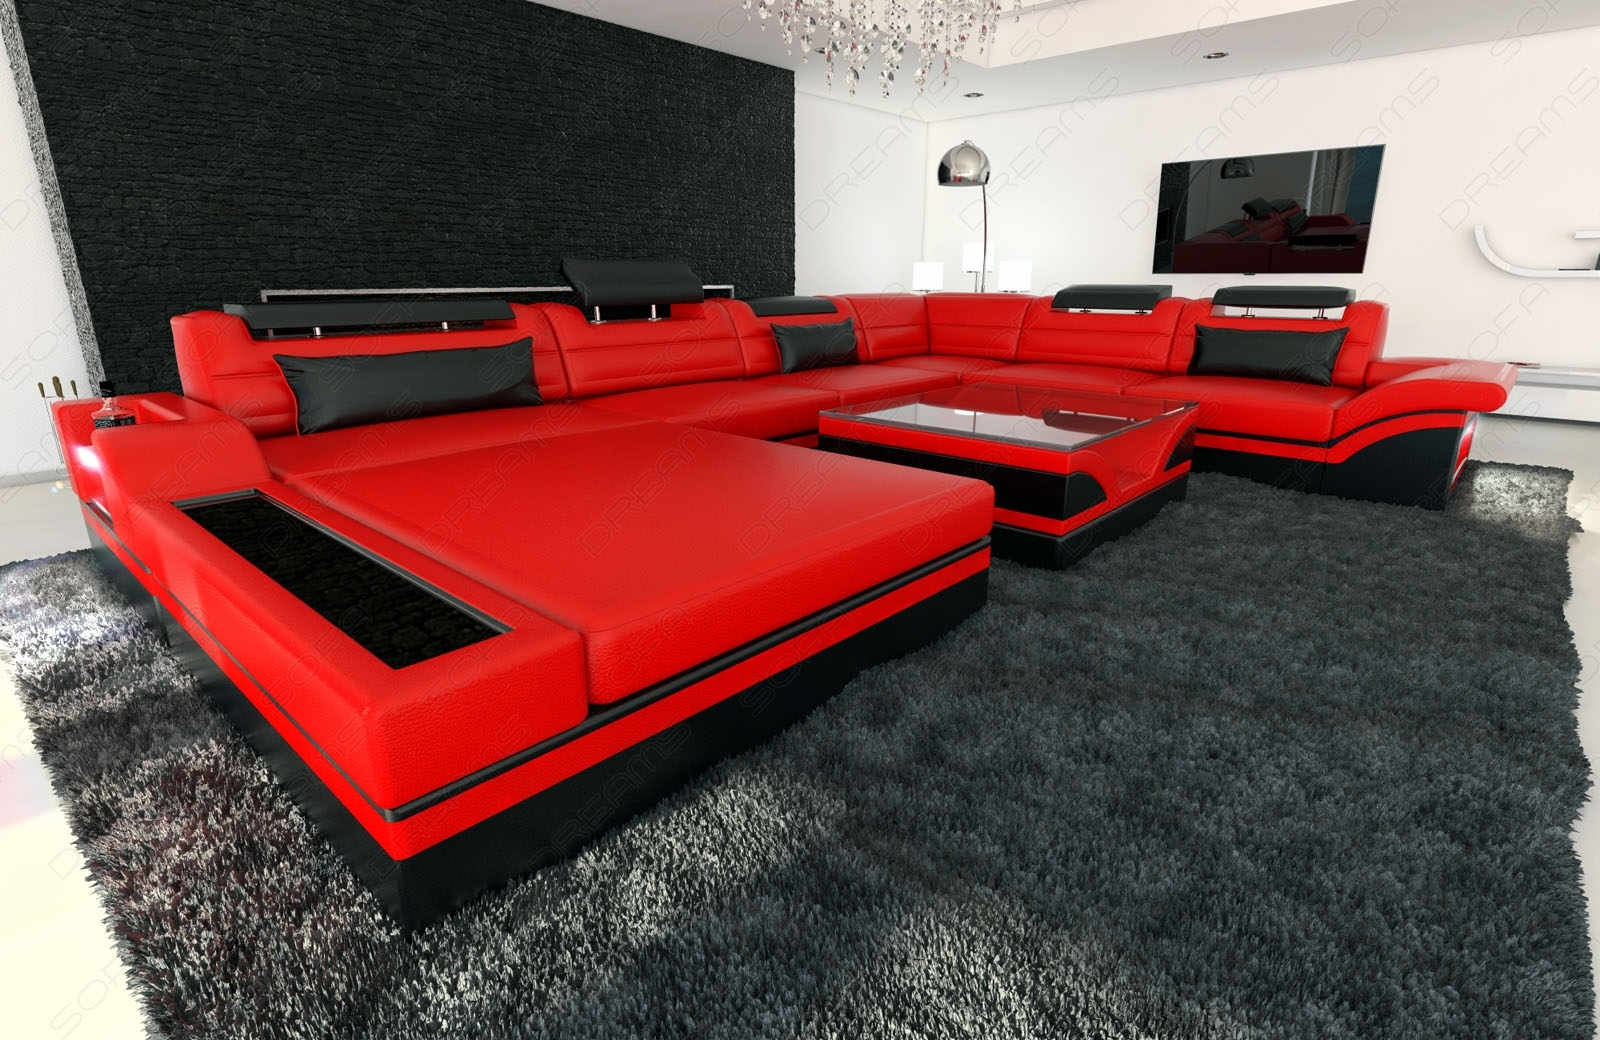 Design Sectional Sofa Mezzo Xxl With Led Lights Red Black | Ebay Regarding Red Black Sectional Sofas (View 3 of 10)